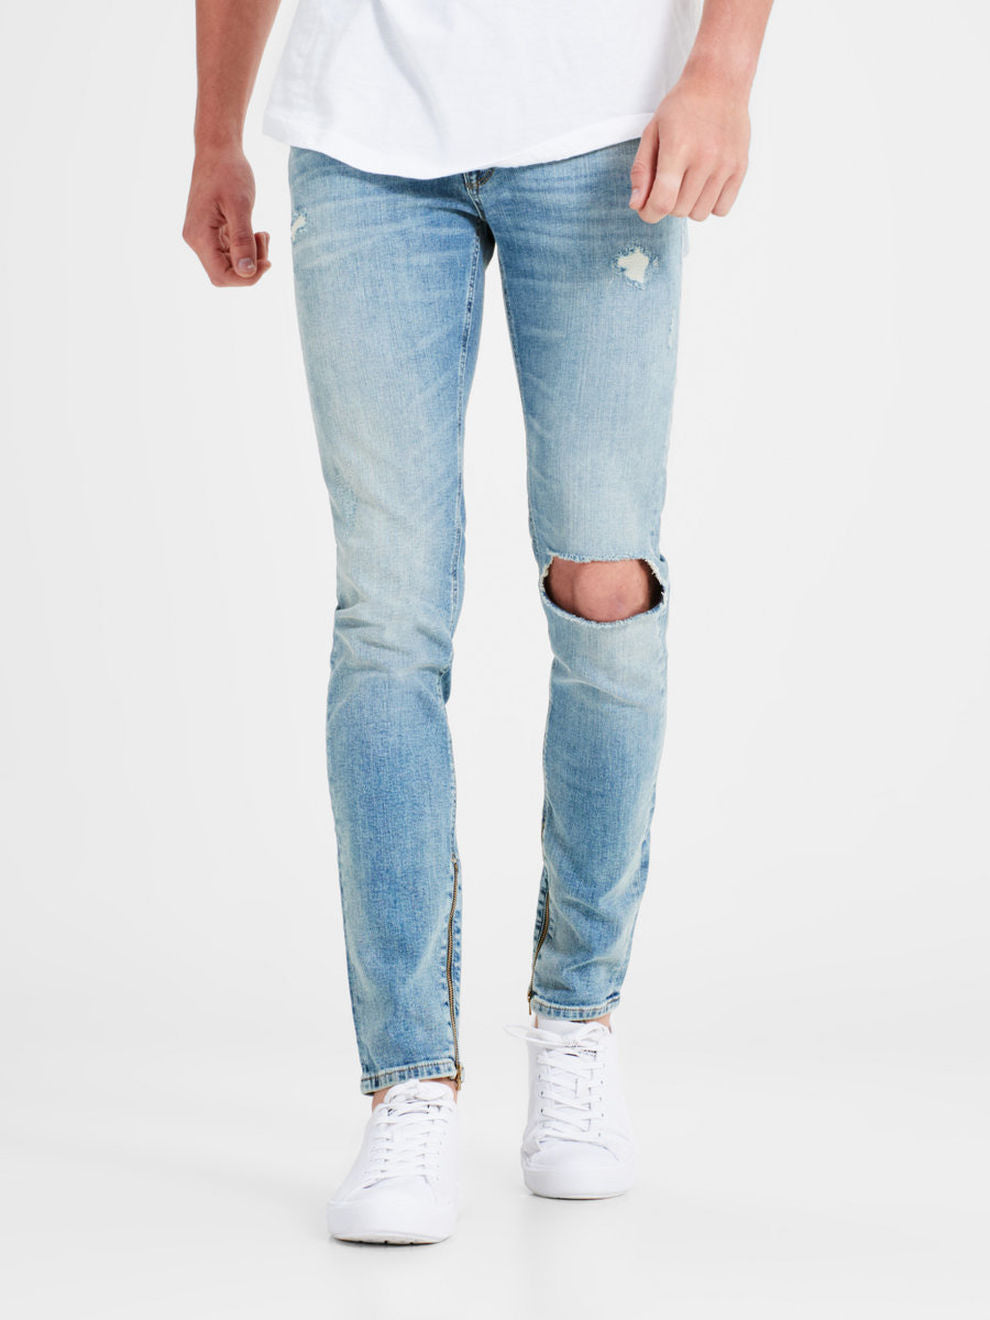 SKINNY FIT ZIPPED ANKLES LIAM 088 JEANS